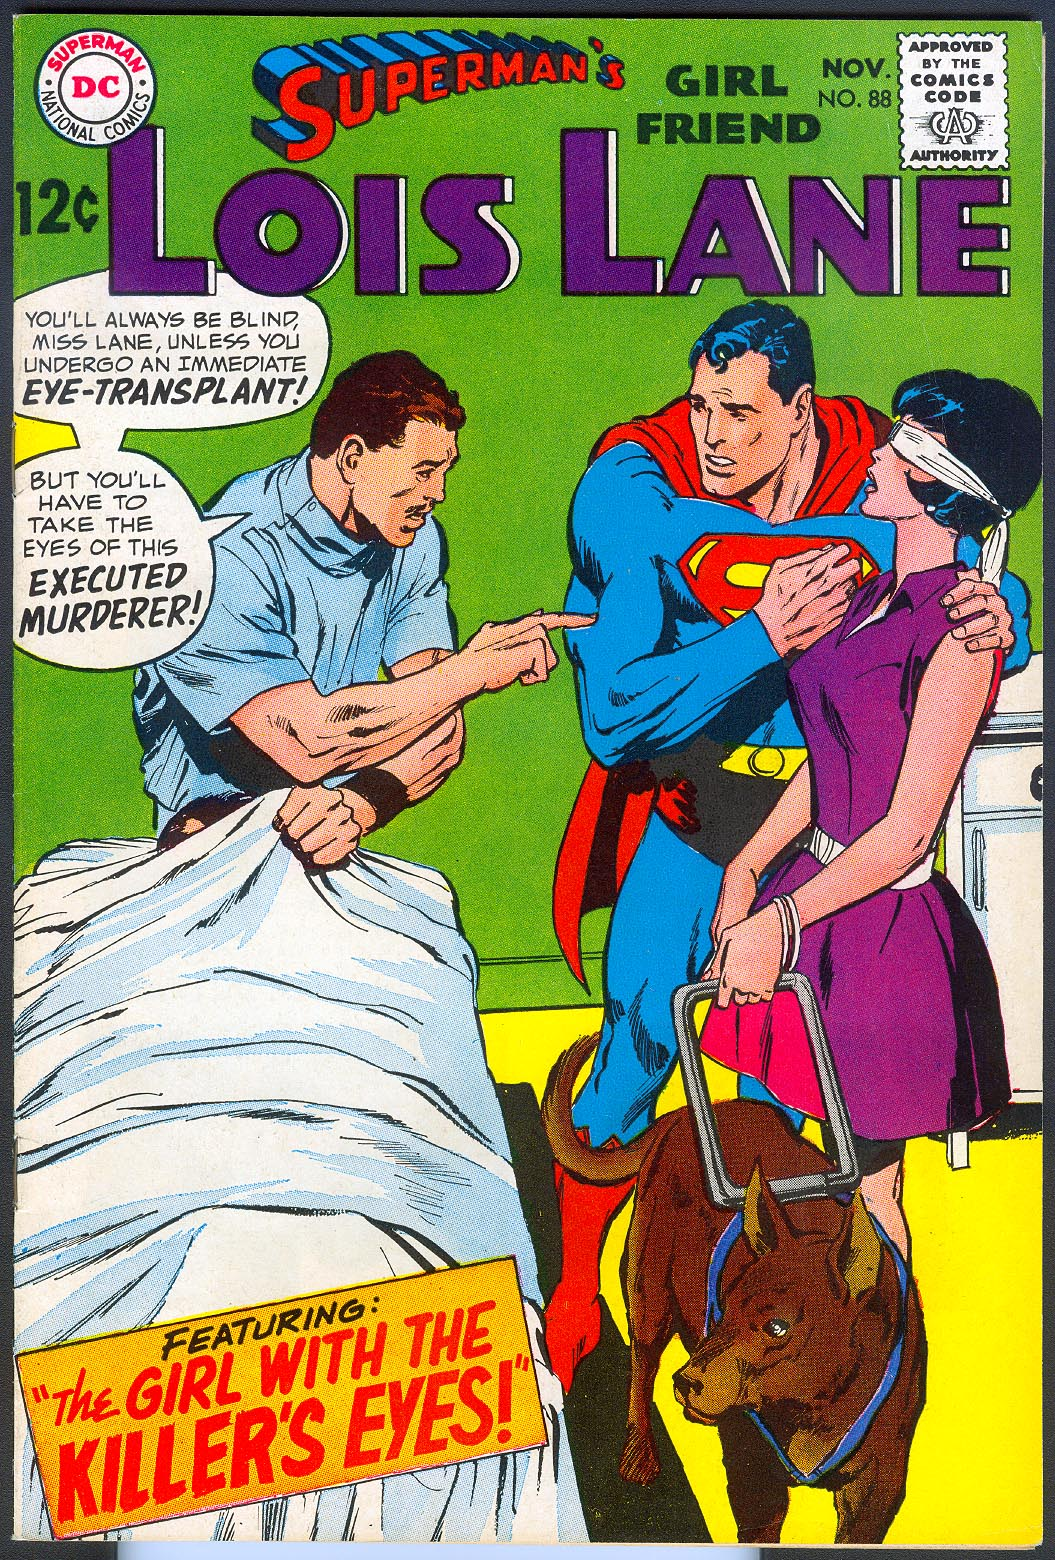 Supermans Girlfriend Lois Lane 88 -VF